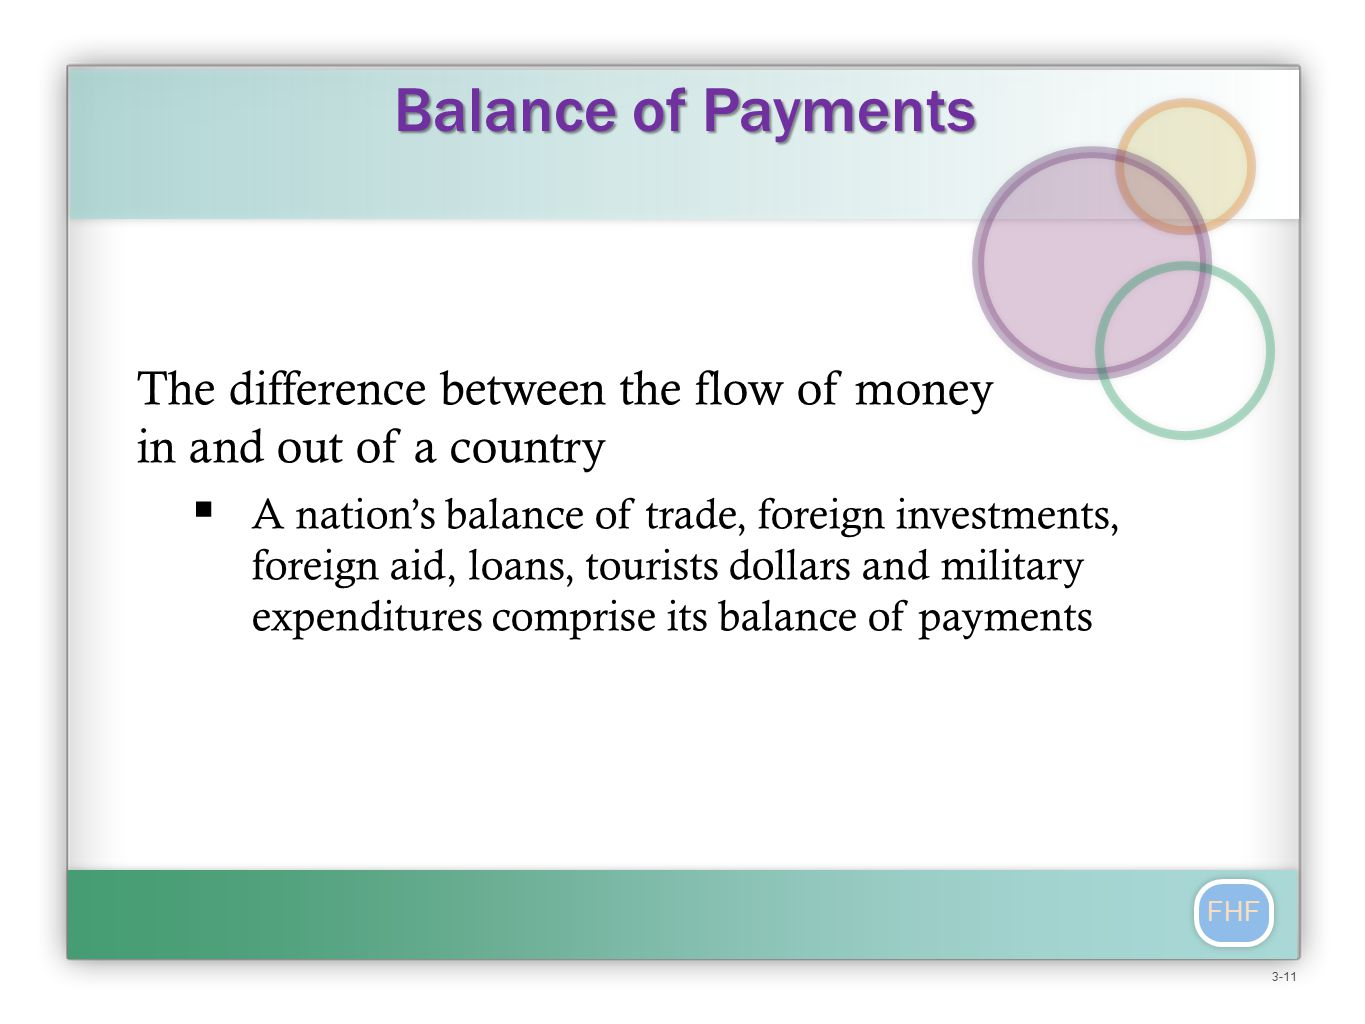 FHF Balance of Payments The difference between the flow of money in and out of a country  A nation's balance of trade, foreign investments, foreign aid, loans, tourists dollars and military expenditures comprise its balance of payments 3-11